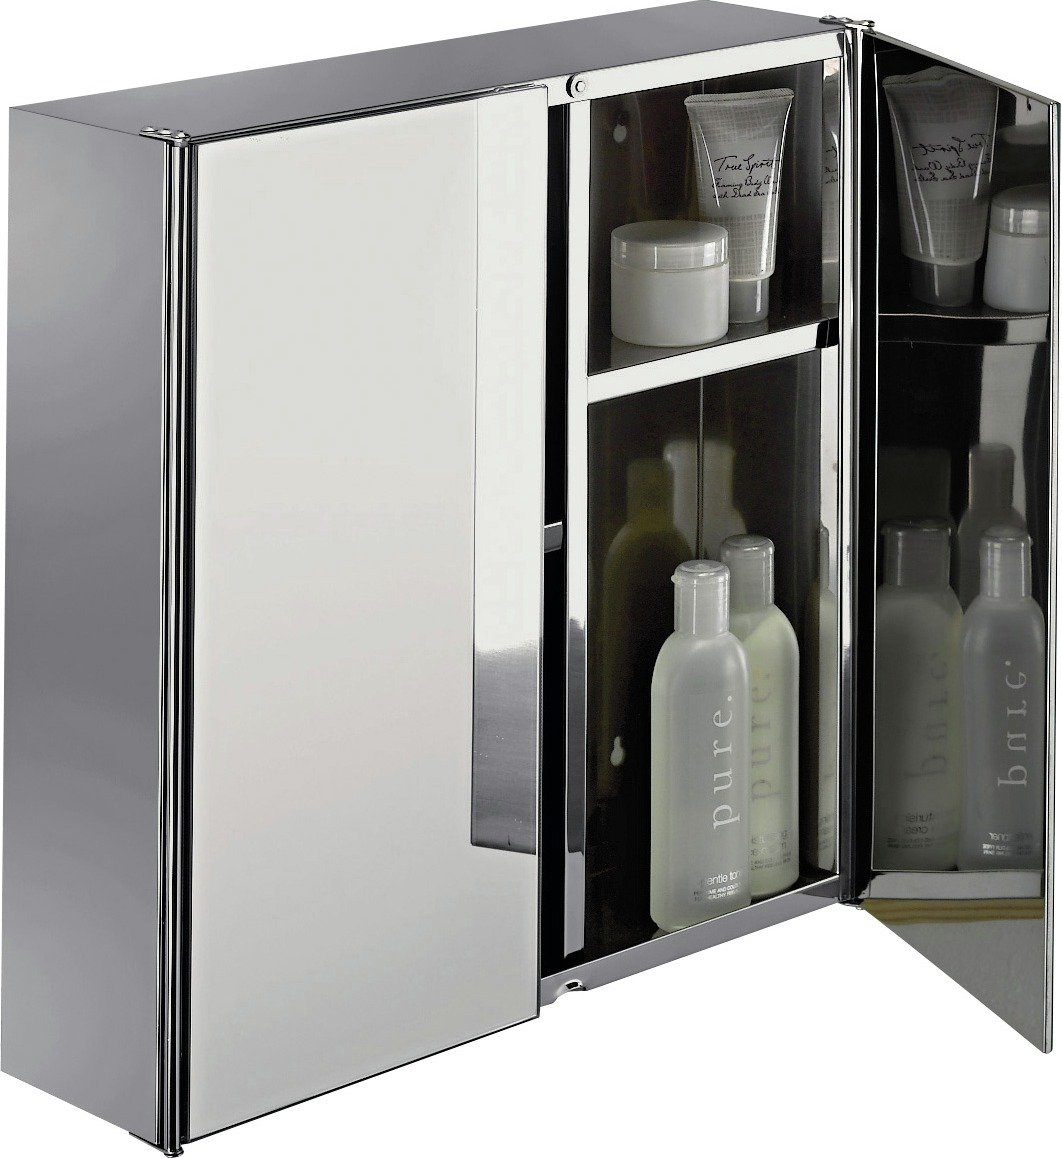 Stainless Steel Mirrored Bathroom Cabinets Stainless Steel Mirrored 2 Door Wall Mounted Bathroom